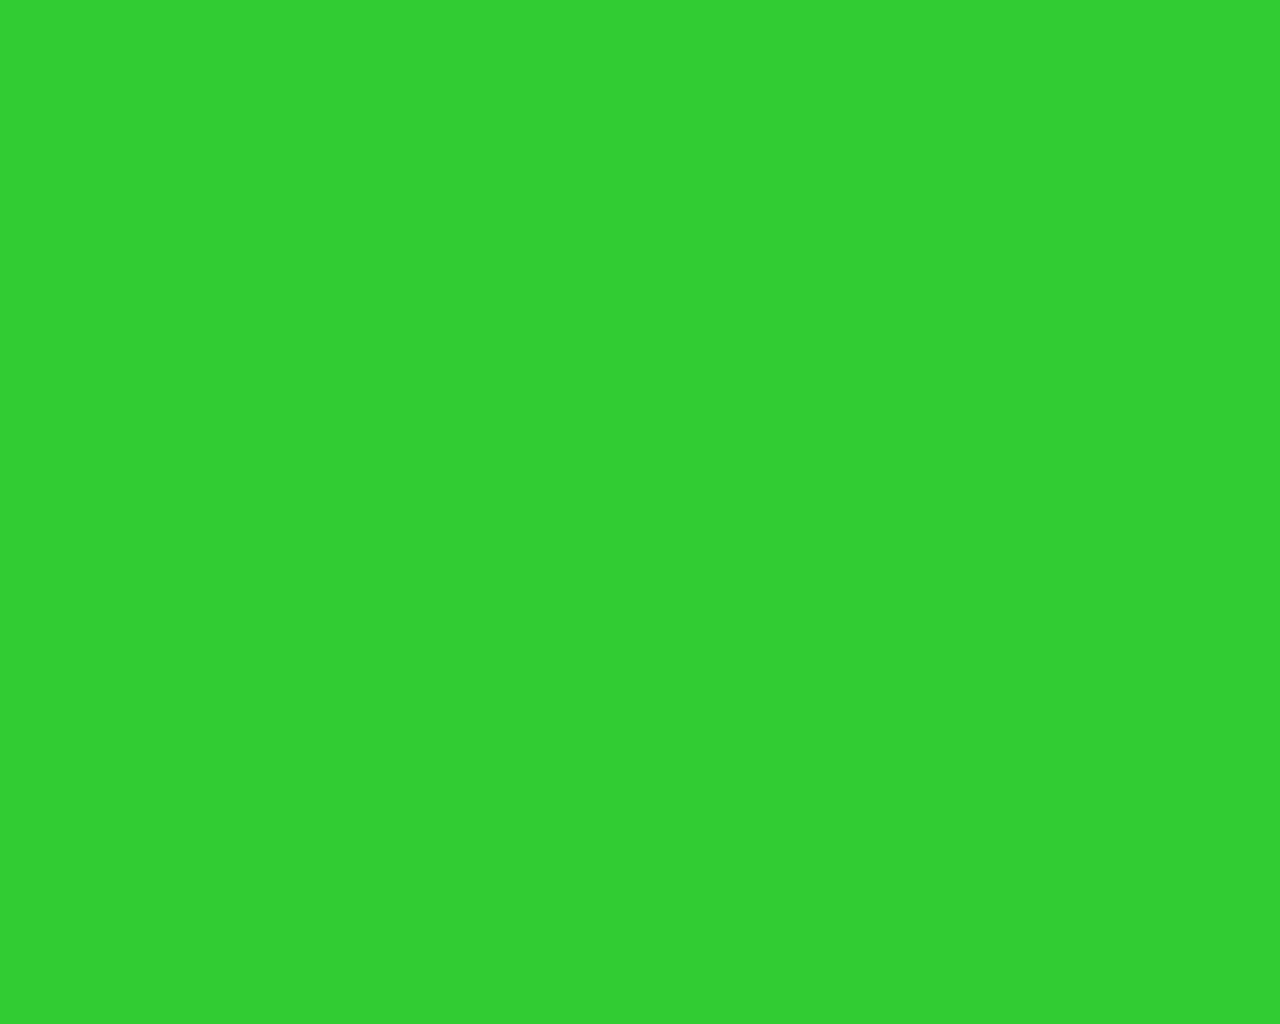 Solid Color Backgrounds Green Solid Color Background View And Download The Below Background